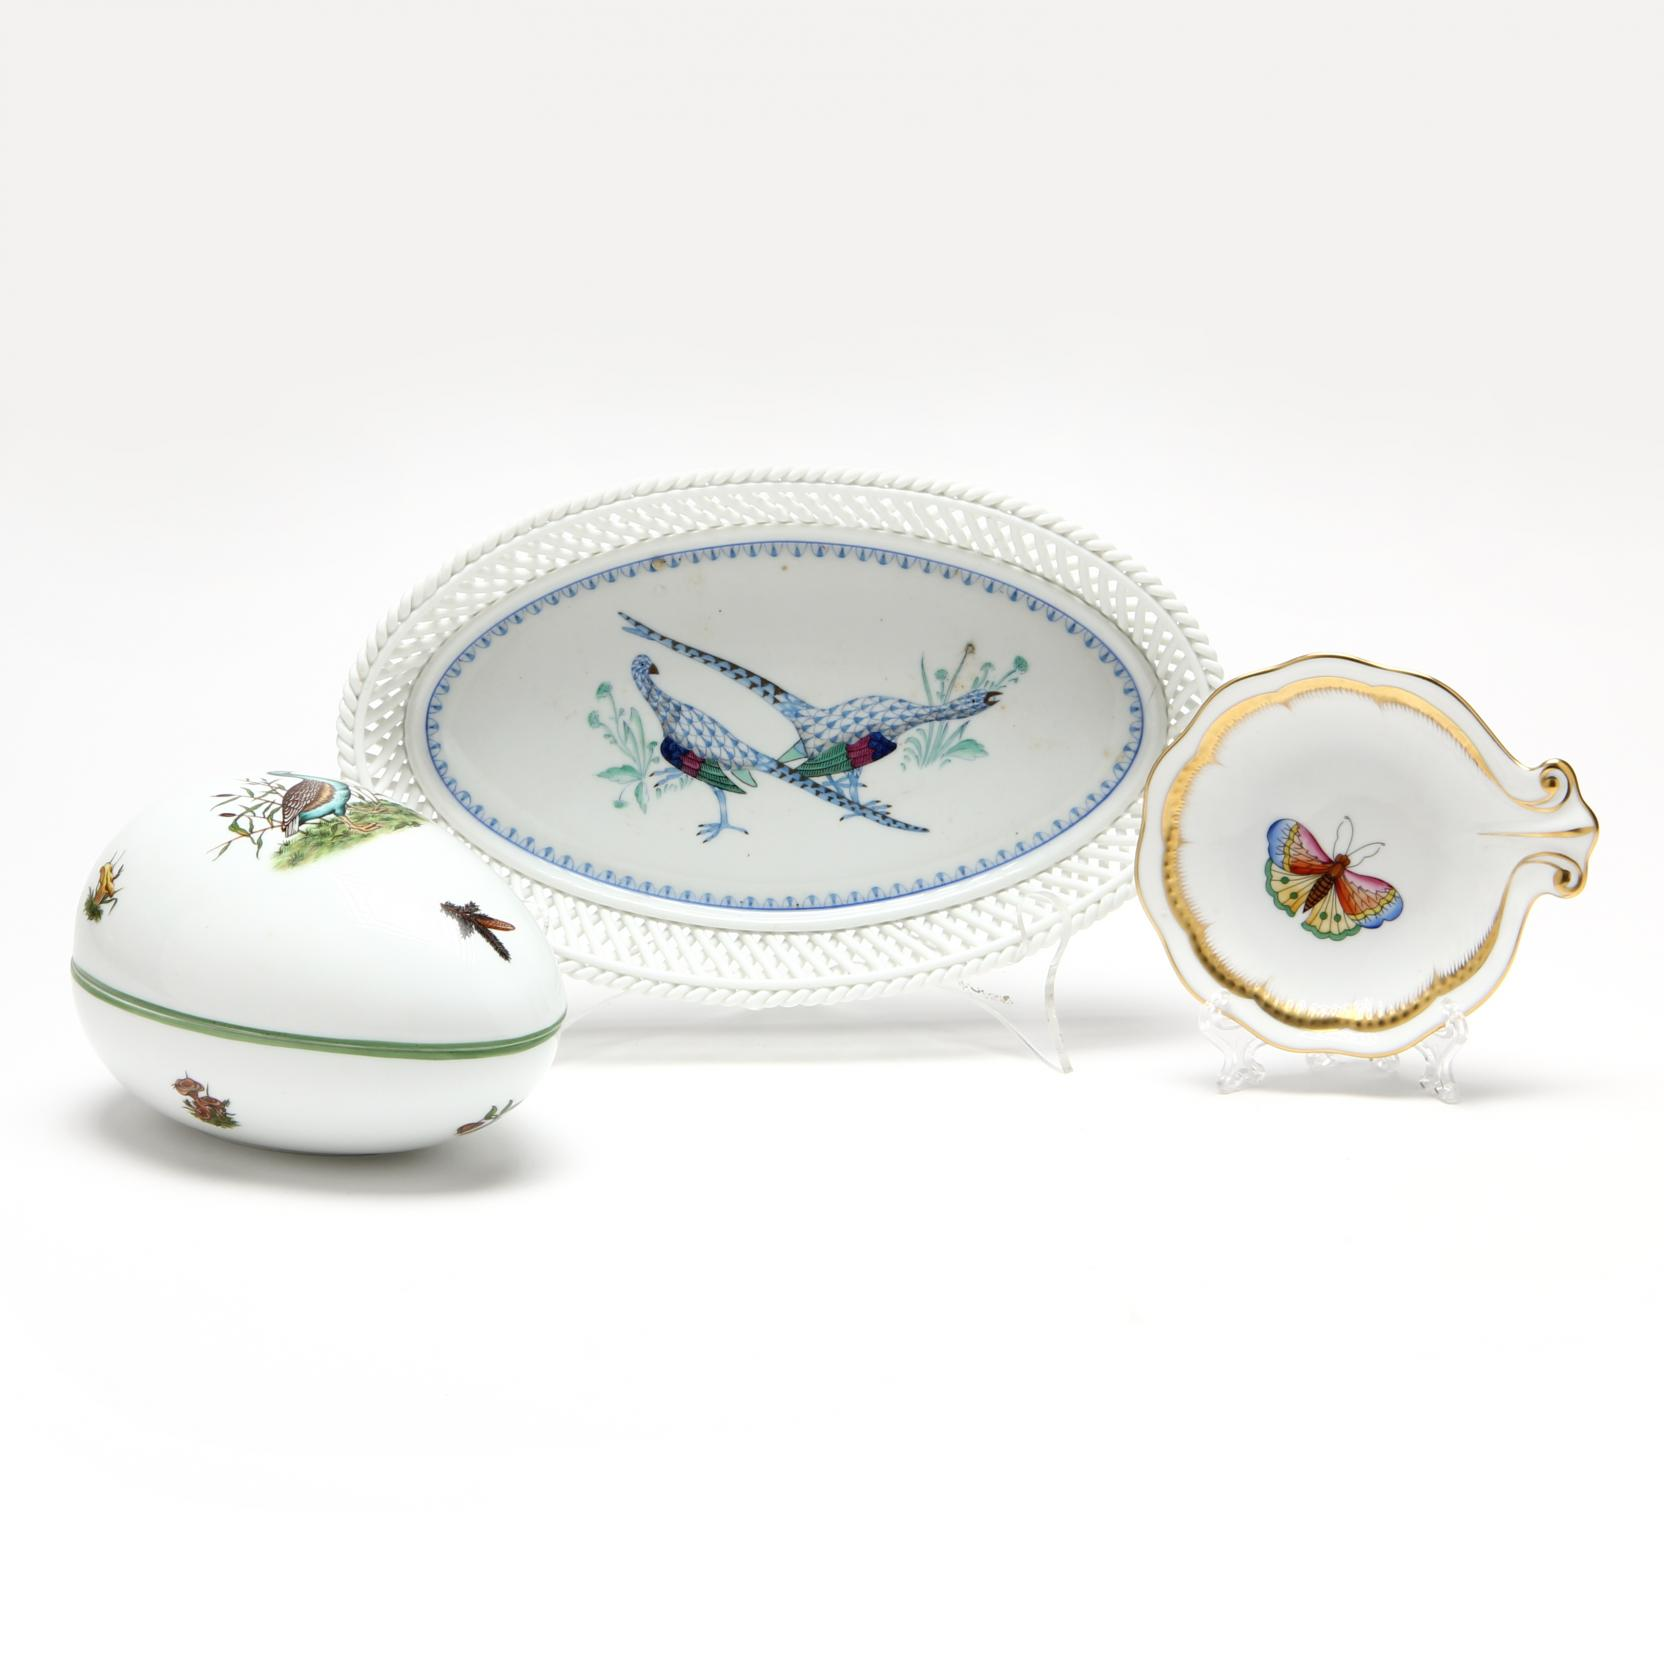 three-pieces-of-herend-porcelain